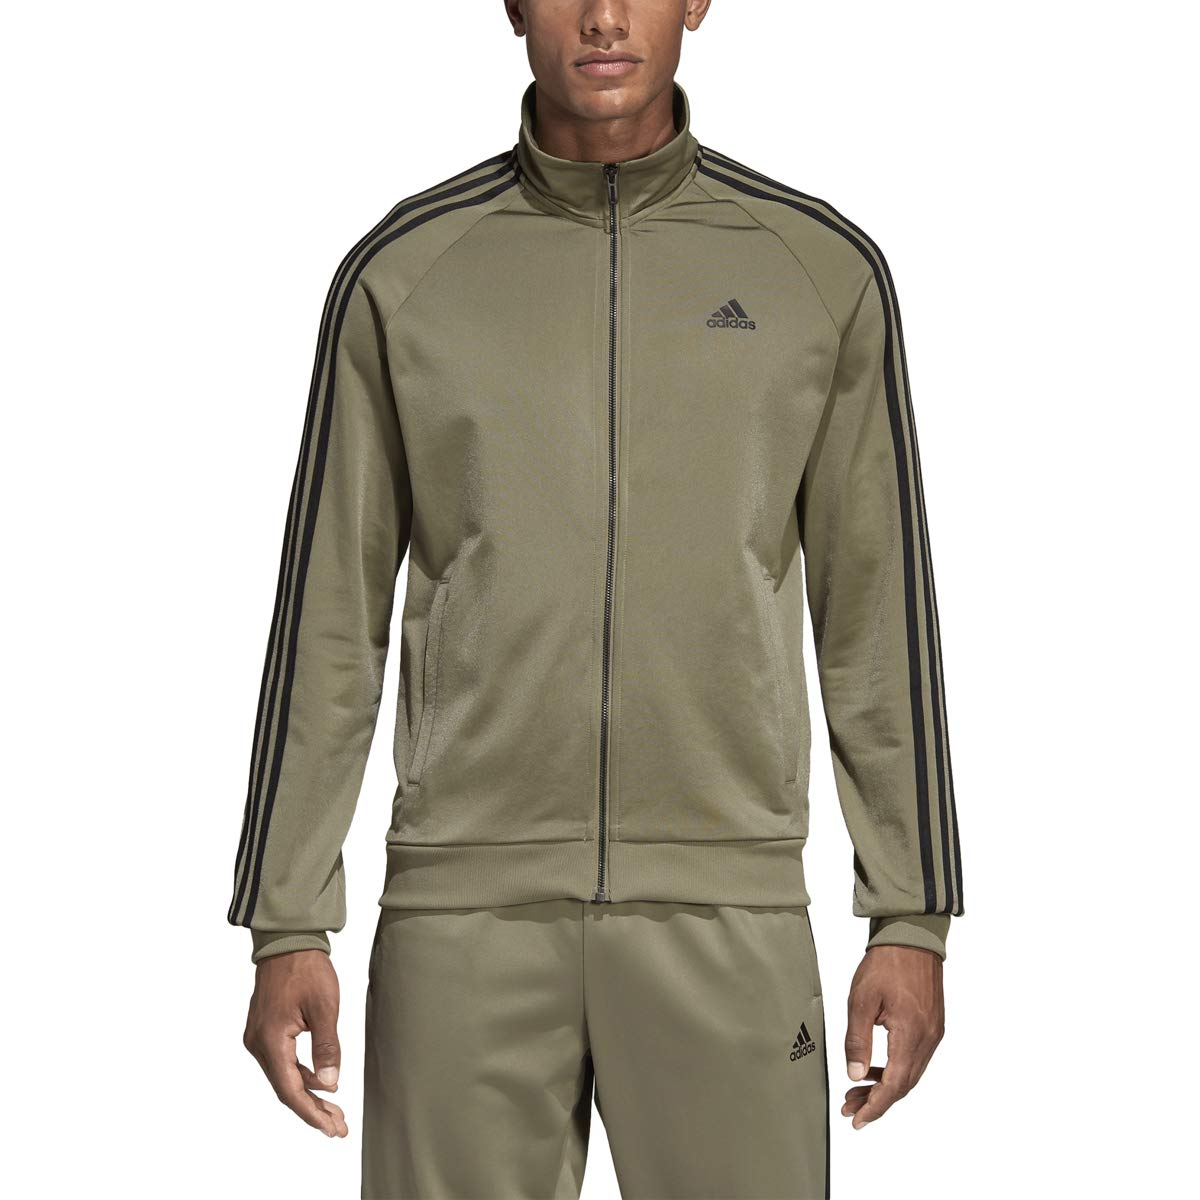 adidas Essentials 3S Tricot Track Jacket Men's All Sports M Trace Cargo